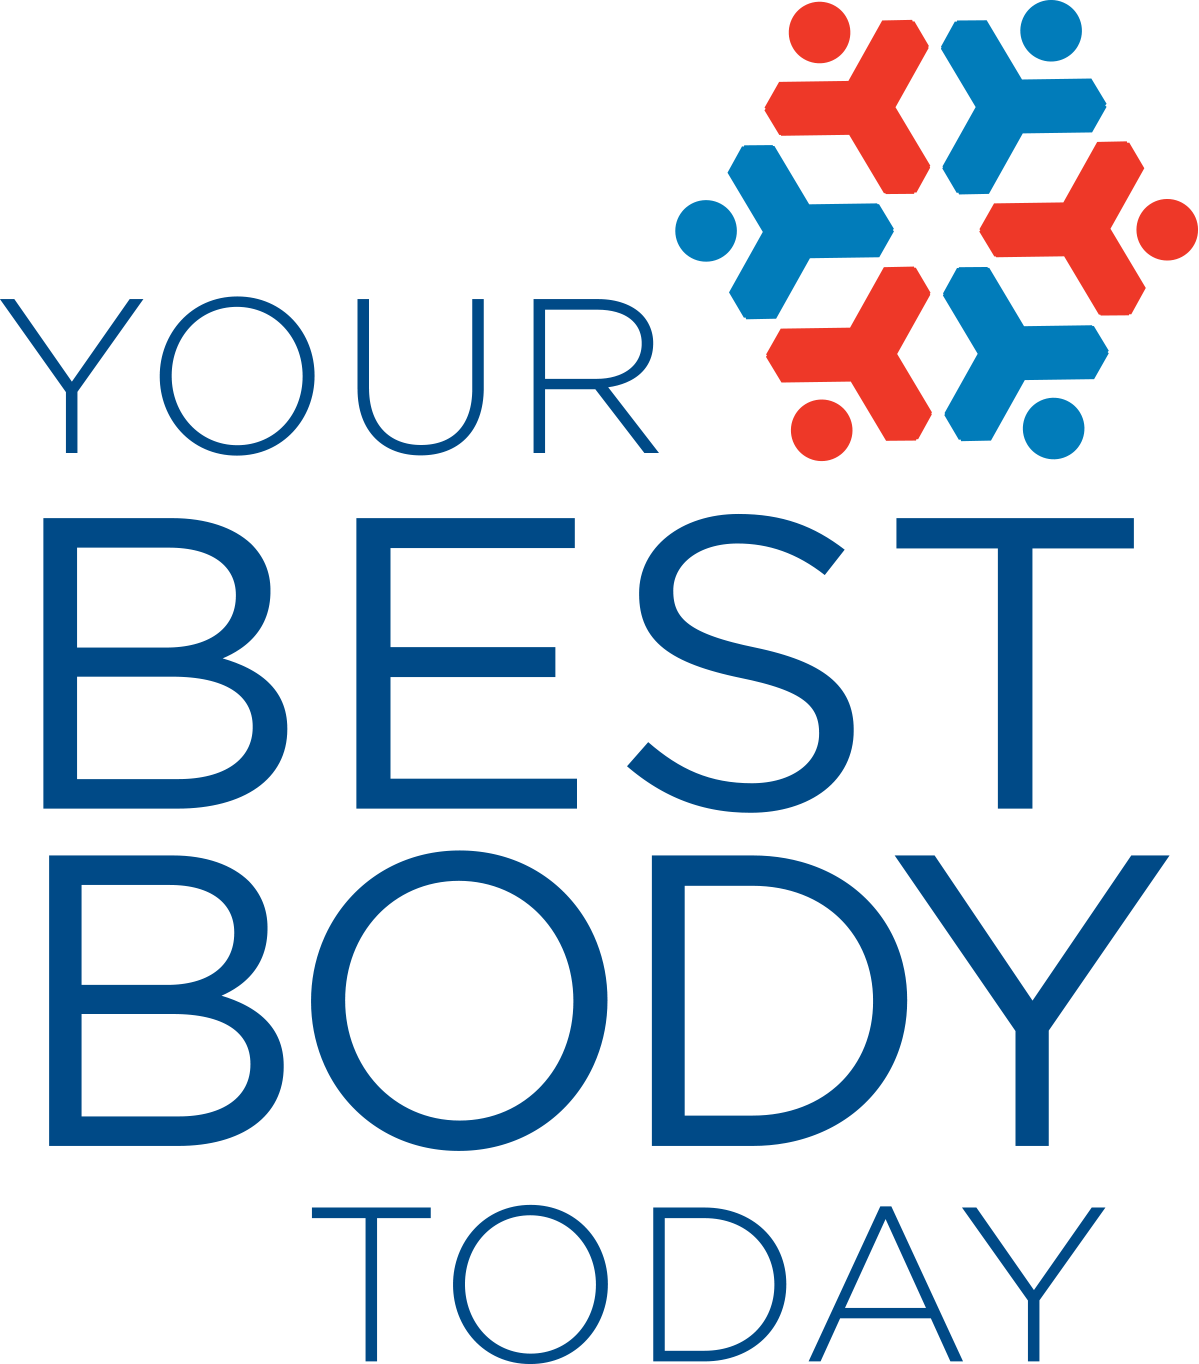 Your Best Body Today